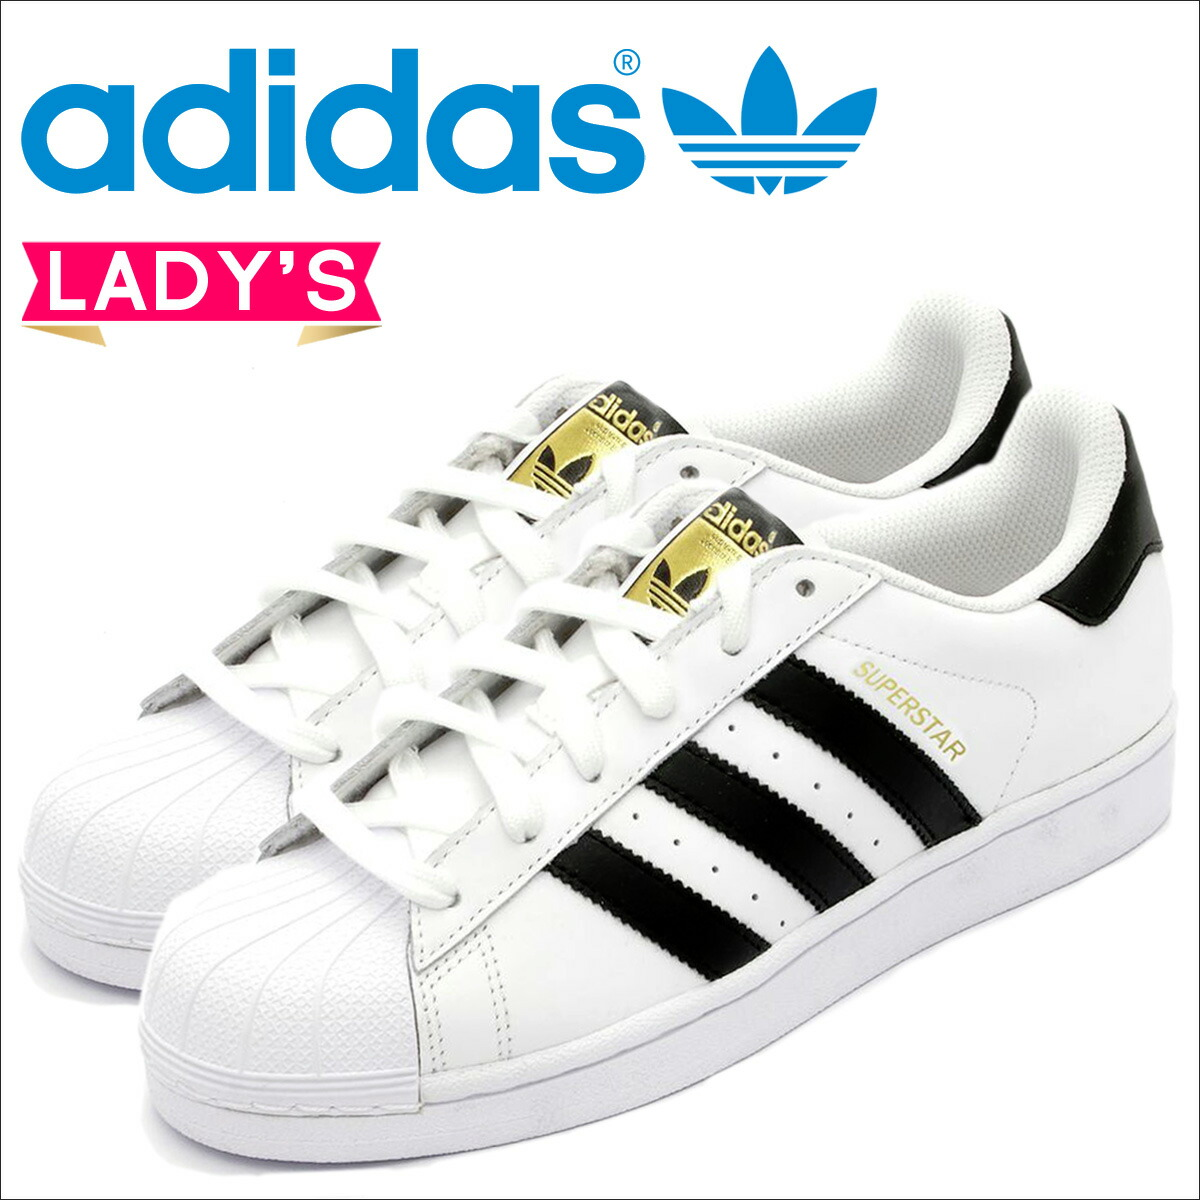 Adidas Superstar Girls Size 4